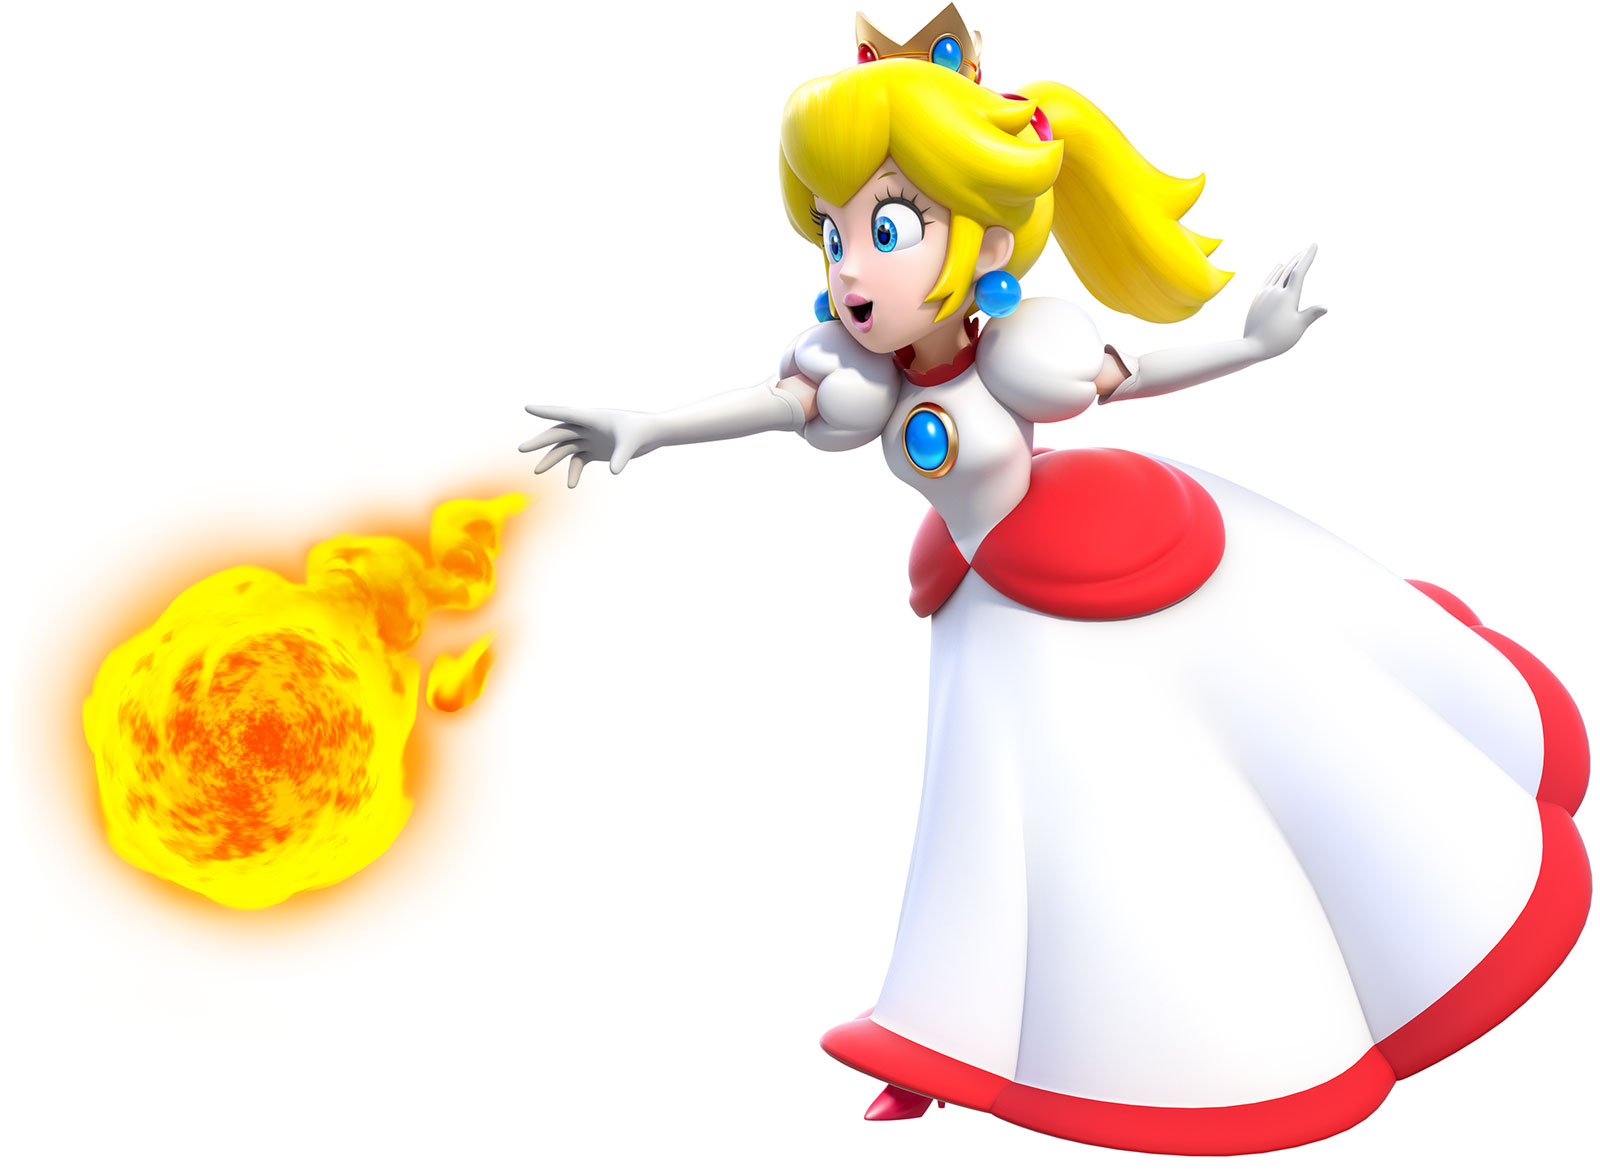 mario dating peach The damsel in distress that mario must save in donkey kong isn't princess peach from the super mario bros games in fact her name is pauline and before that, her name was simply the lady if.